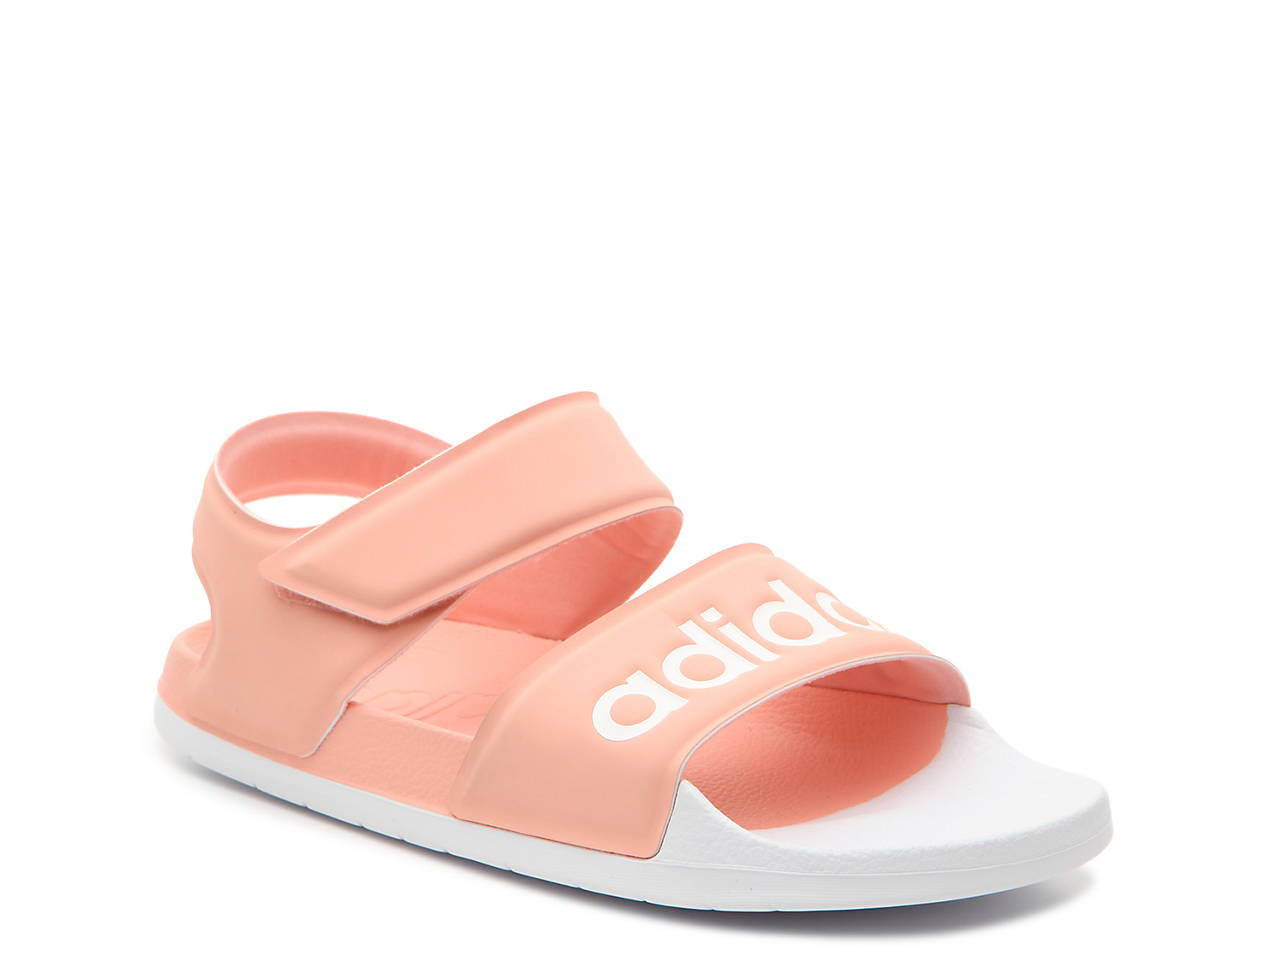 51432443a adidas Adilette Sandal Women s Shoes